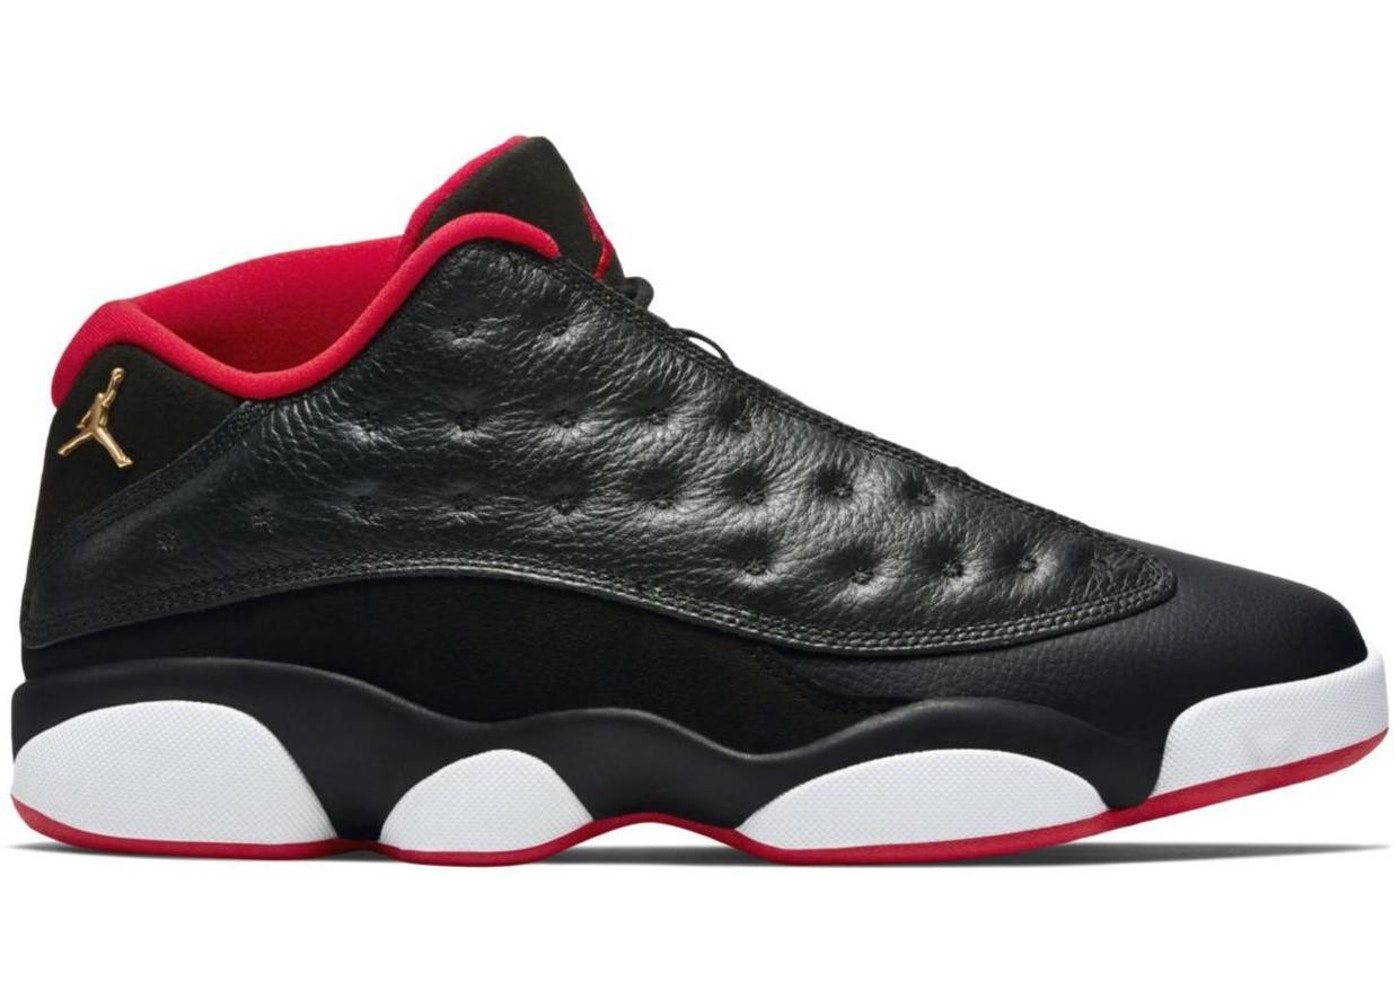 super popular 35571 ca36c Jordan 13 Retro Low Bred